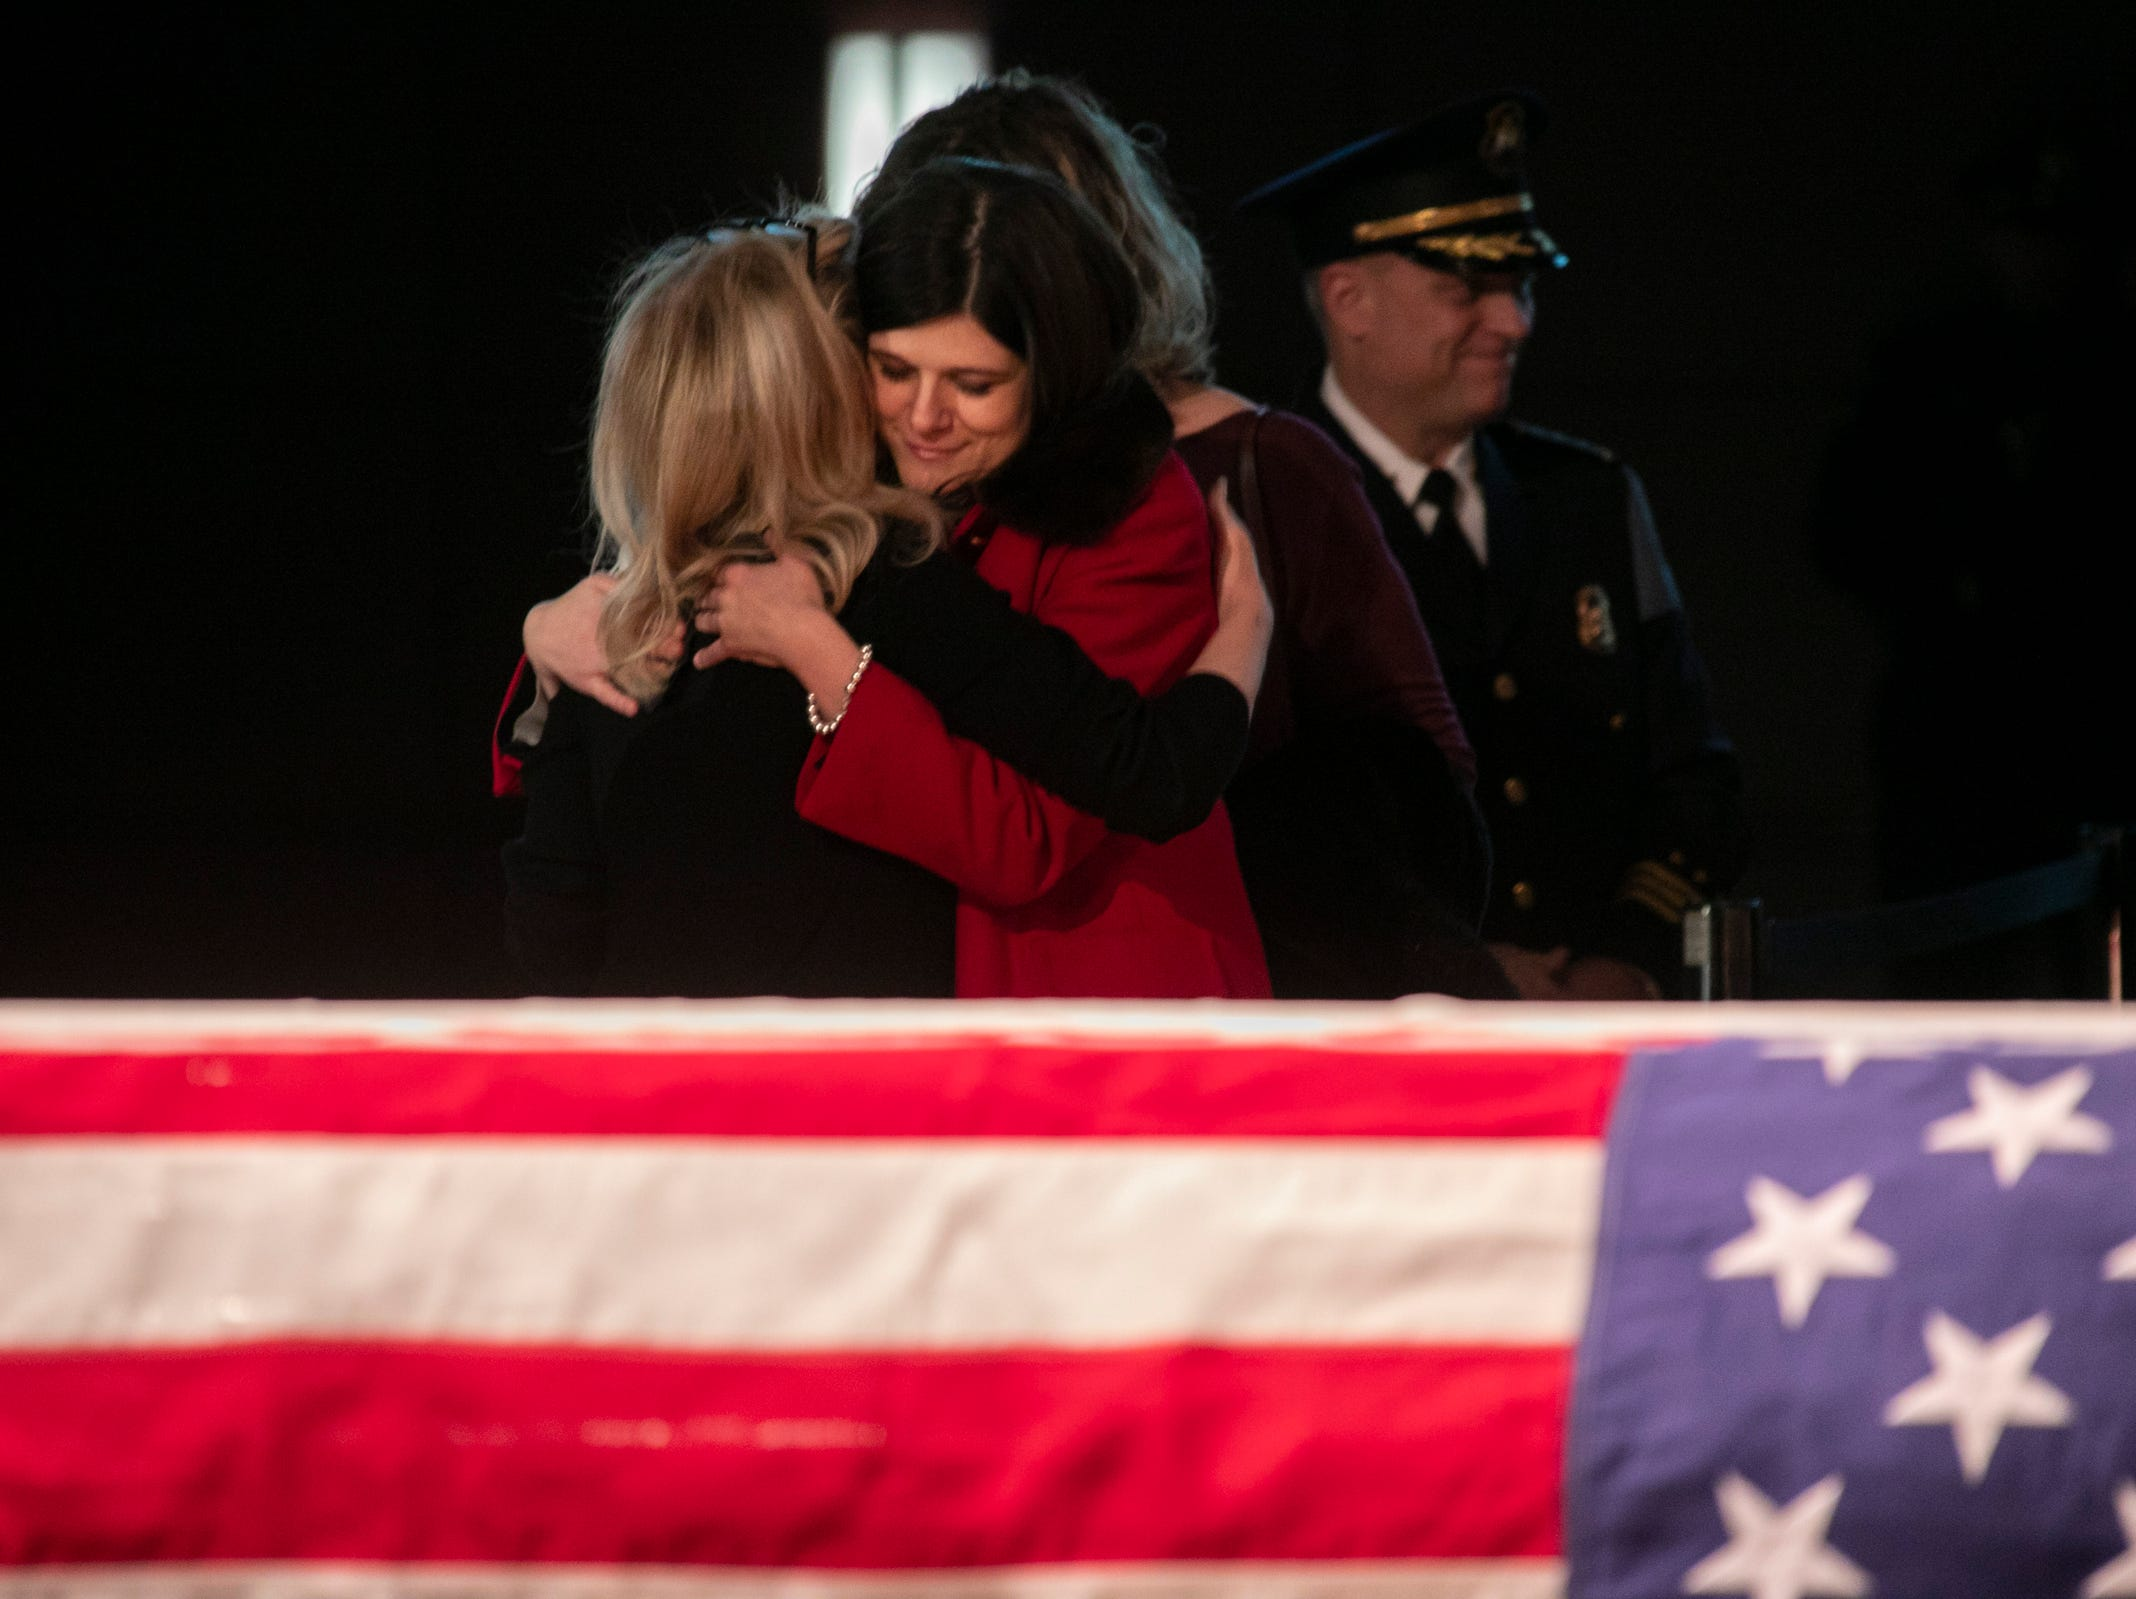 Congresswoman Debbie Dingell greets Rep. Haley Stevens as visitors stream by to pay their respects to her husband John Dingell who is lying in repose at the Michael A. Guido theater in Dearborn Monday, Feb. 11, 2019.